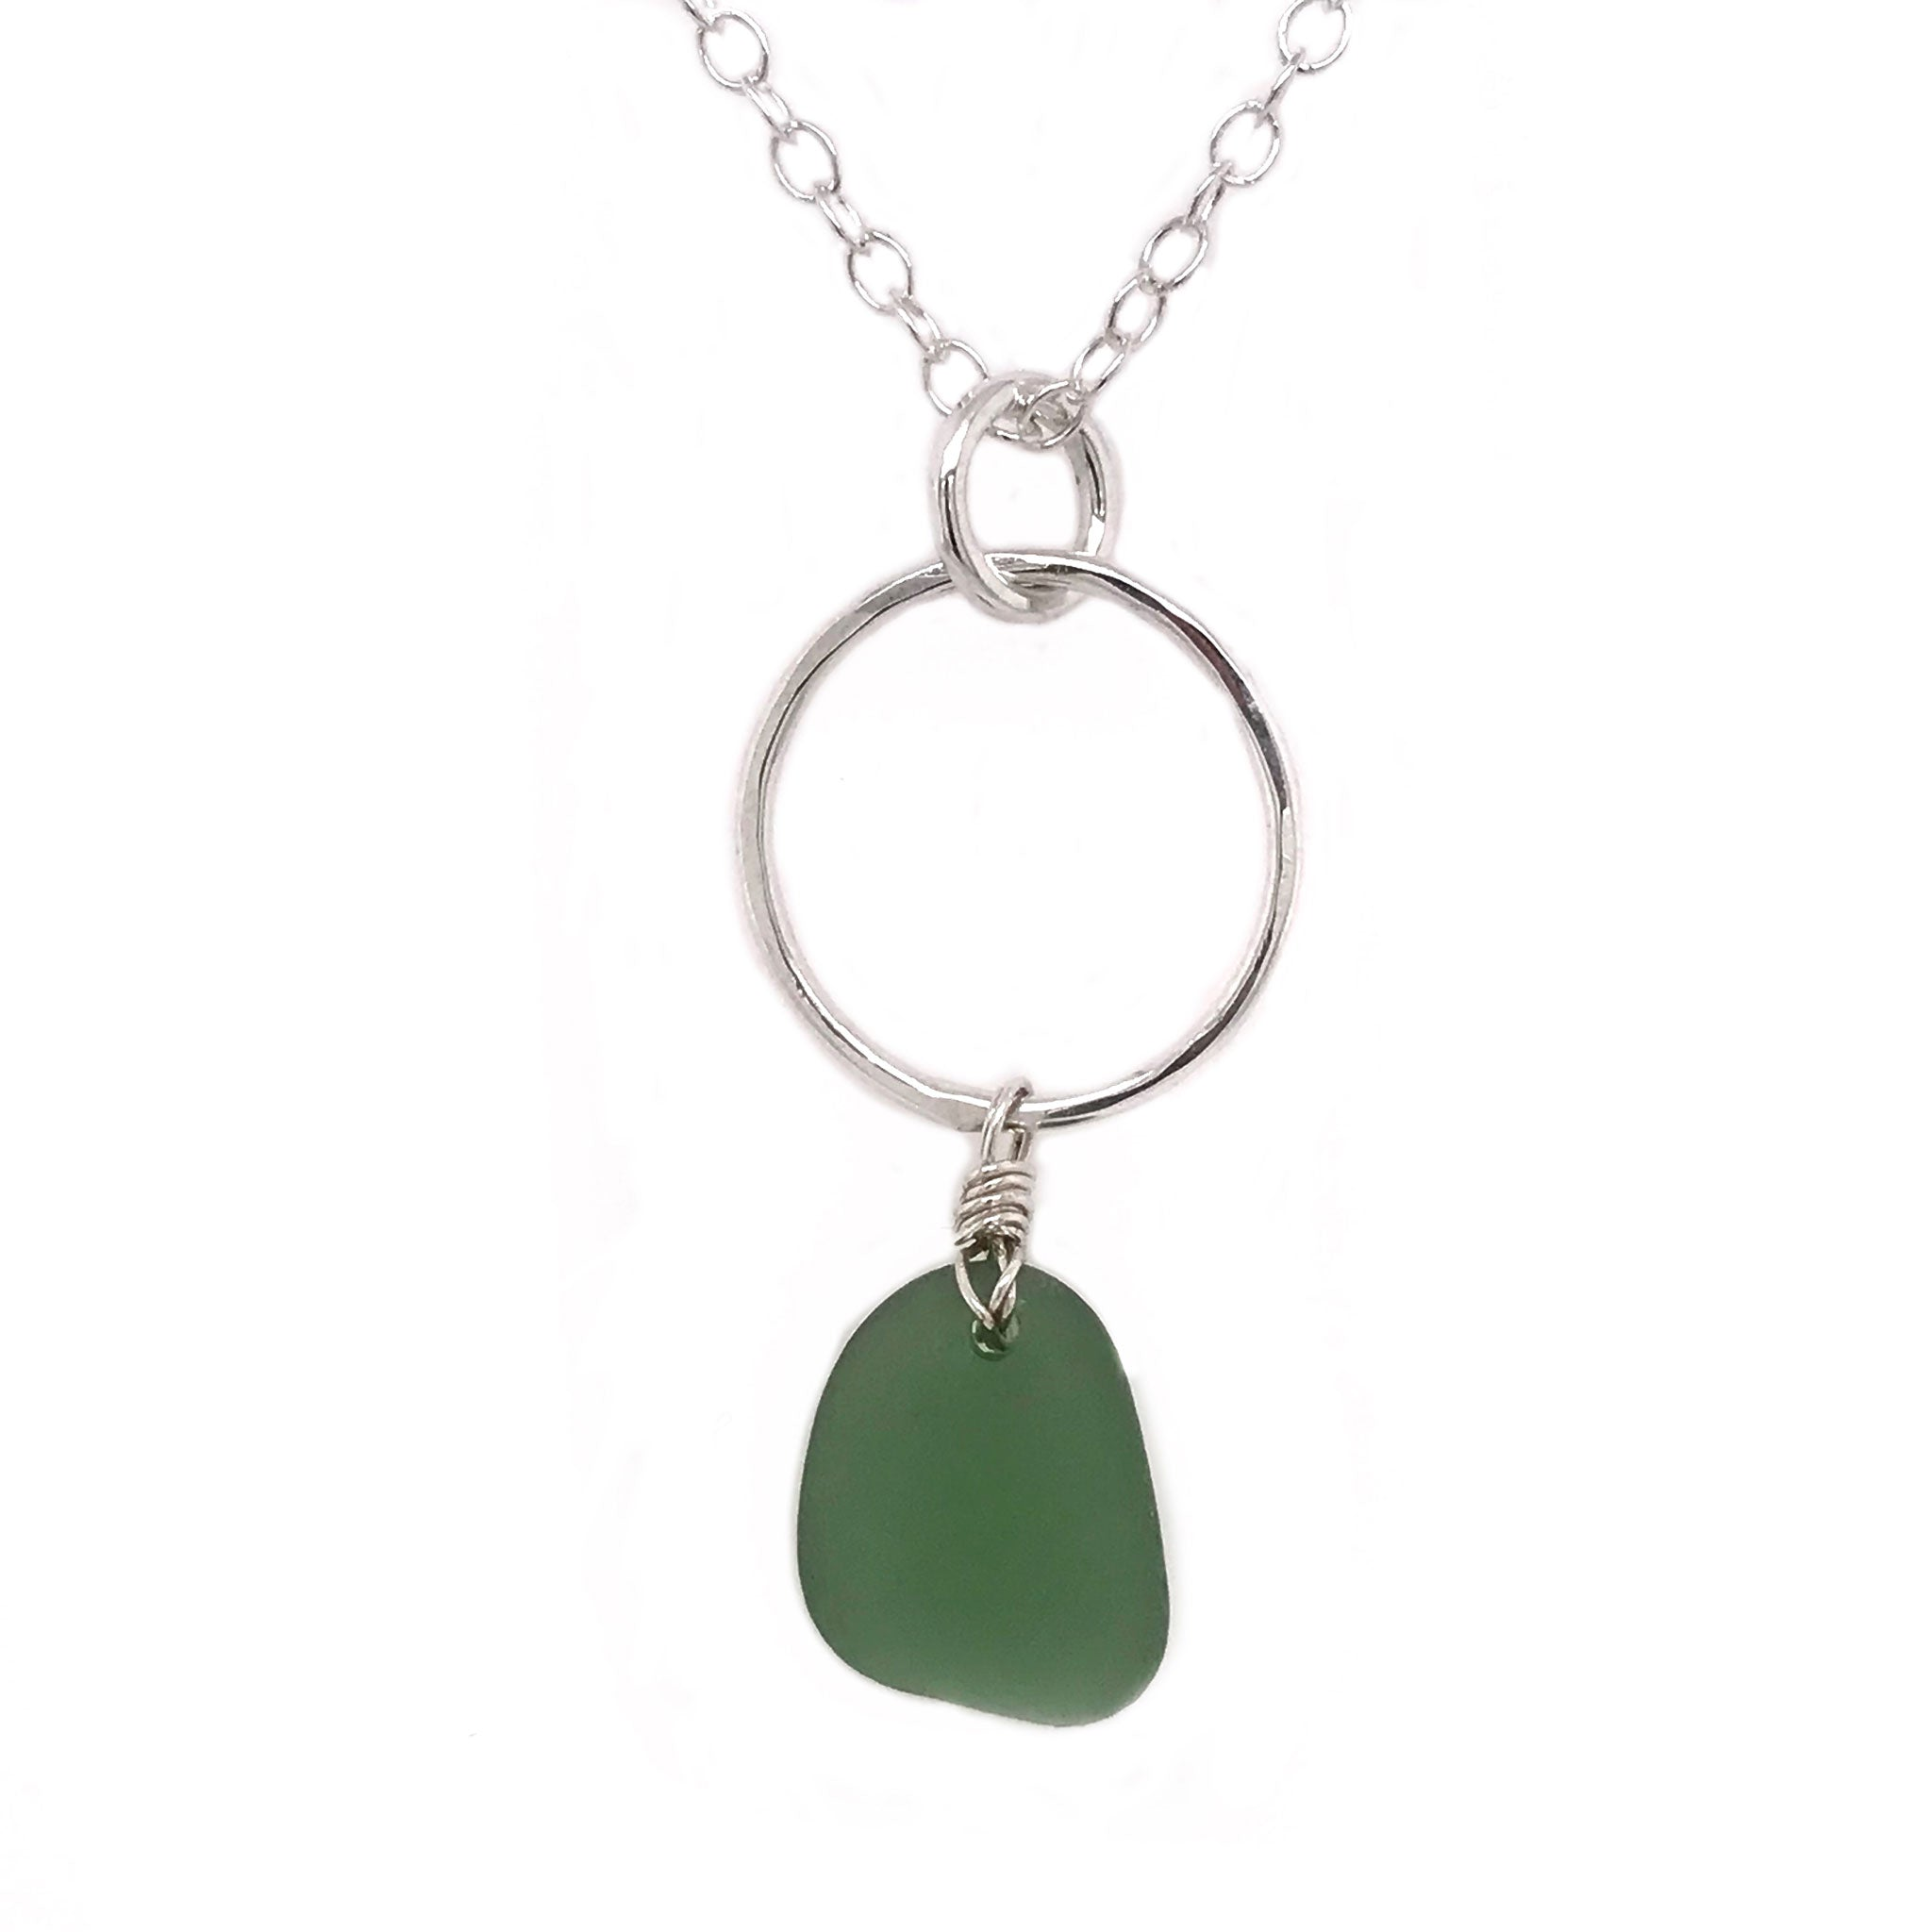 sterling silver necklace with circle design and green seaglass Kriket broadhurst jewellery